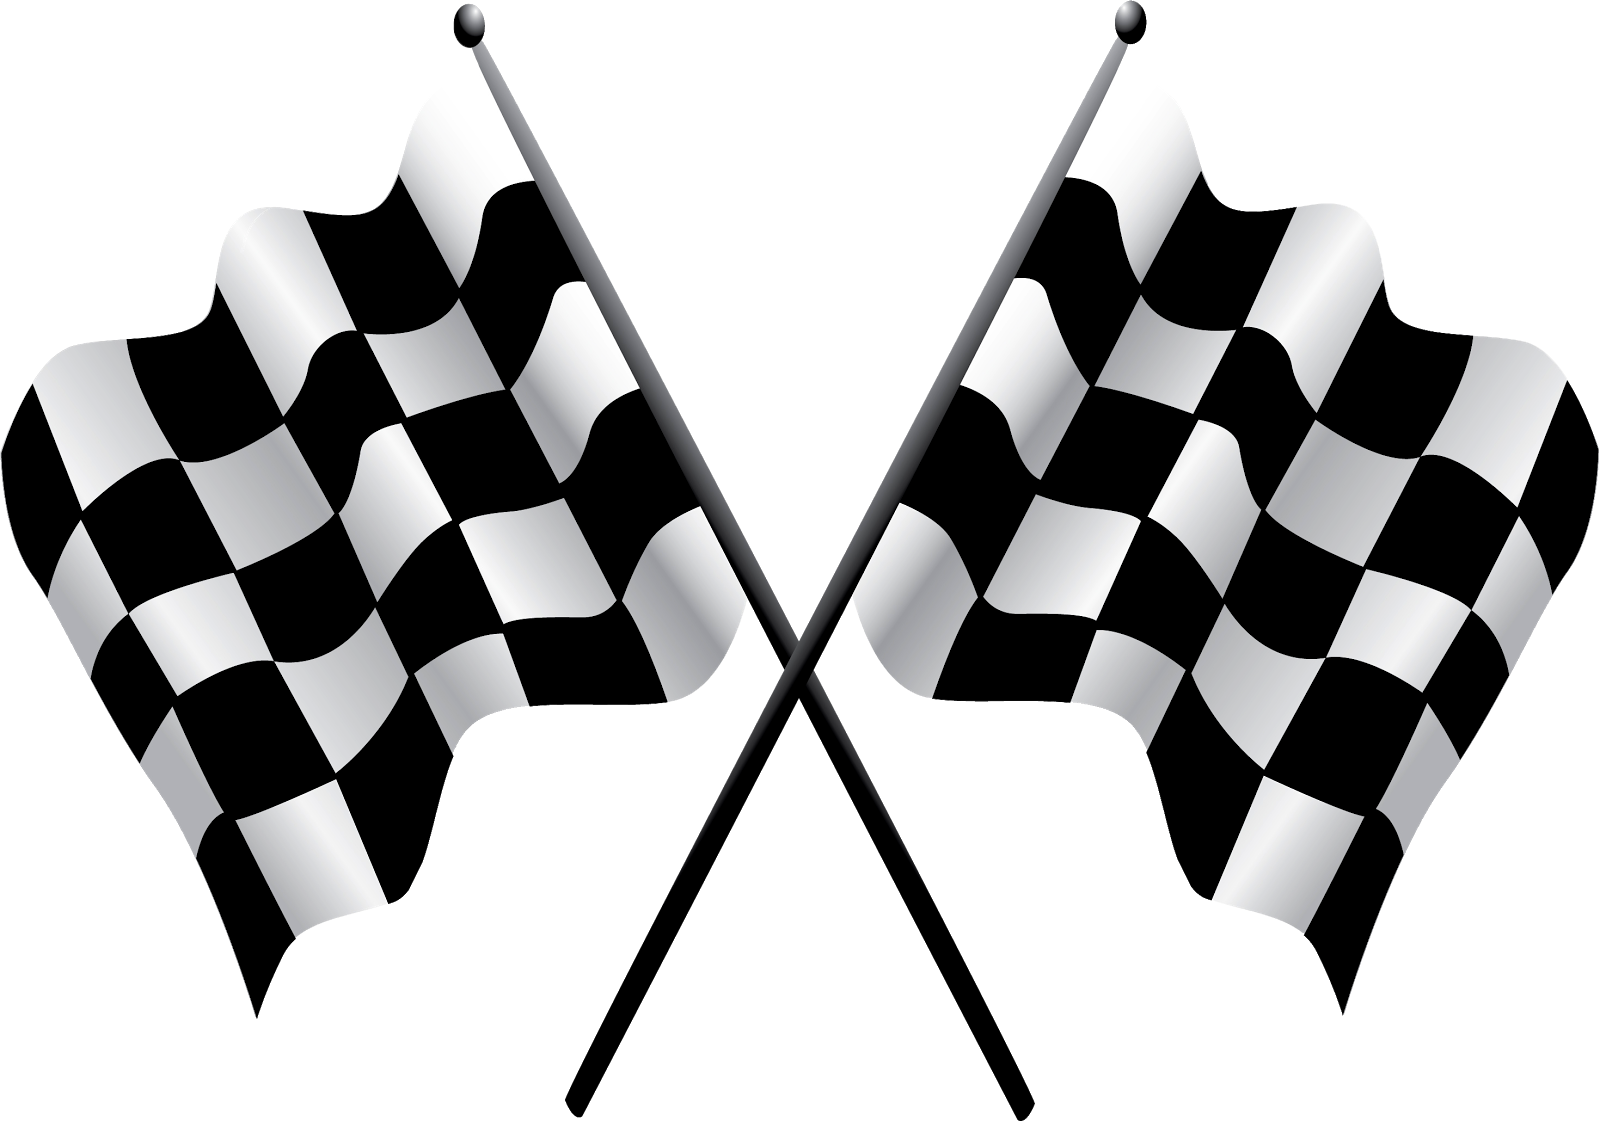 Car race flags clipart picture library Formula 1 Flag PNG Image - PurePNG | Free transparent CC0 PNG Image ... picture library